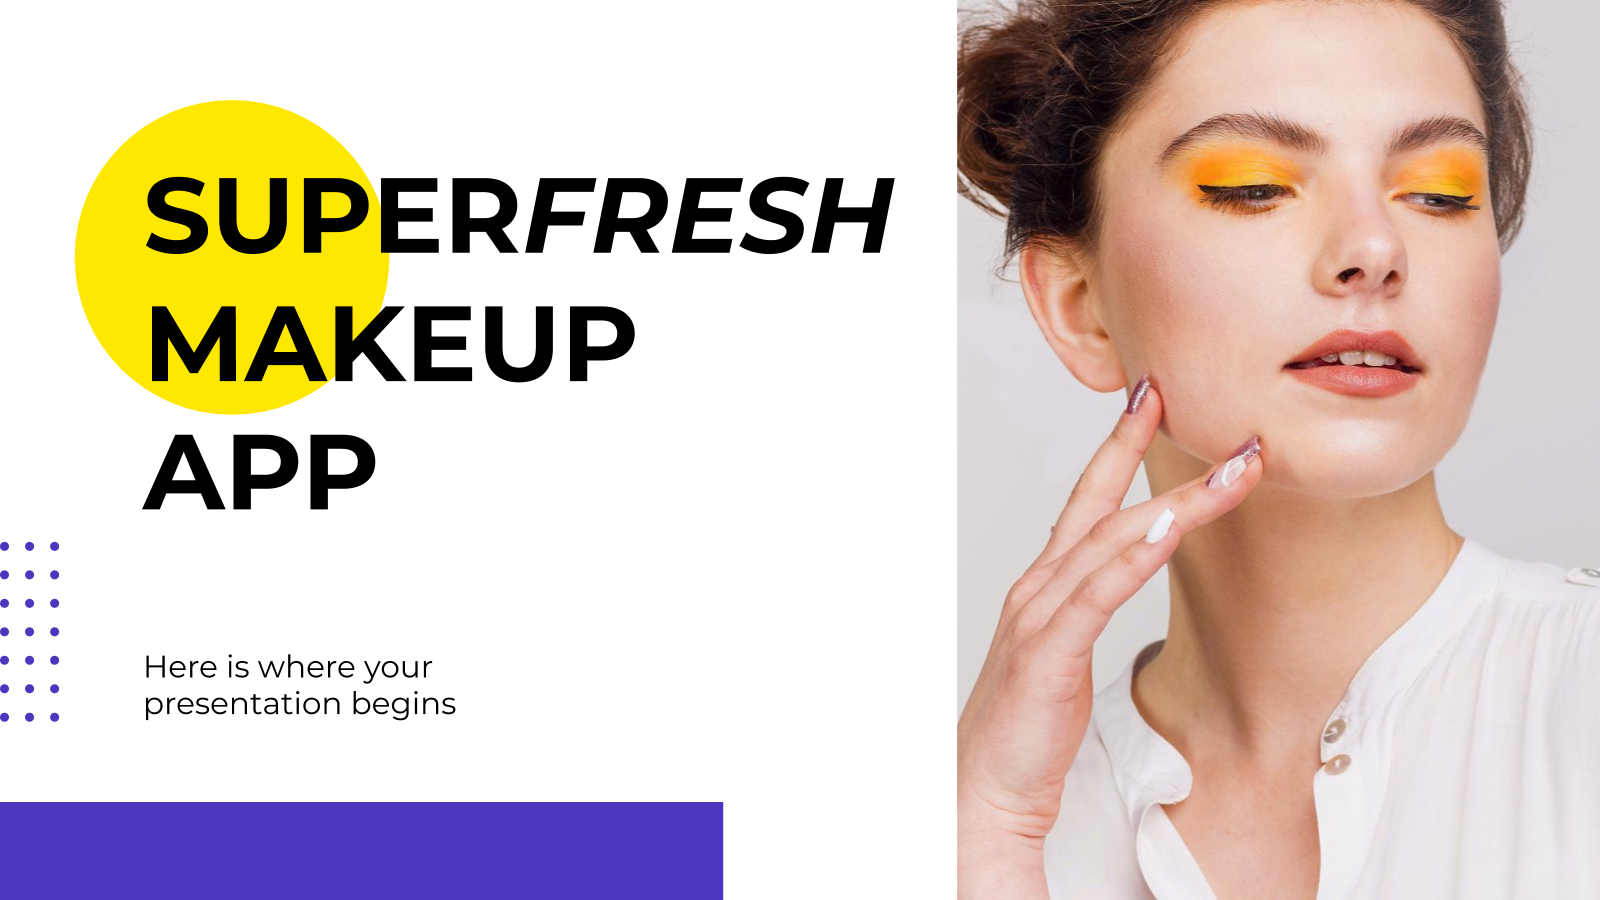 Super Fresh Makeup Shop App presentation template